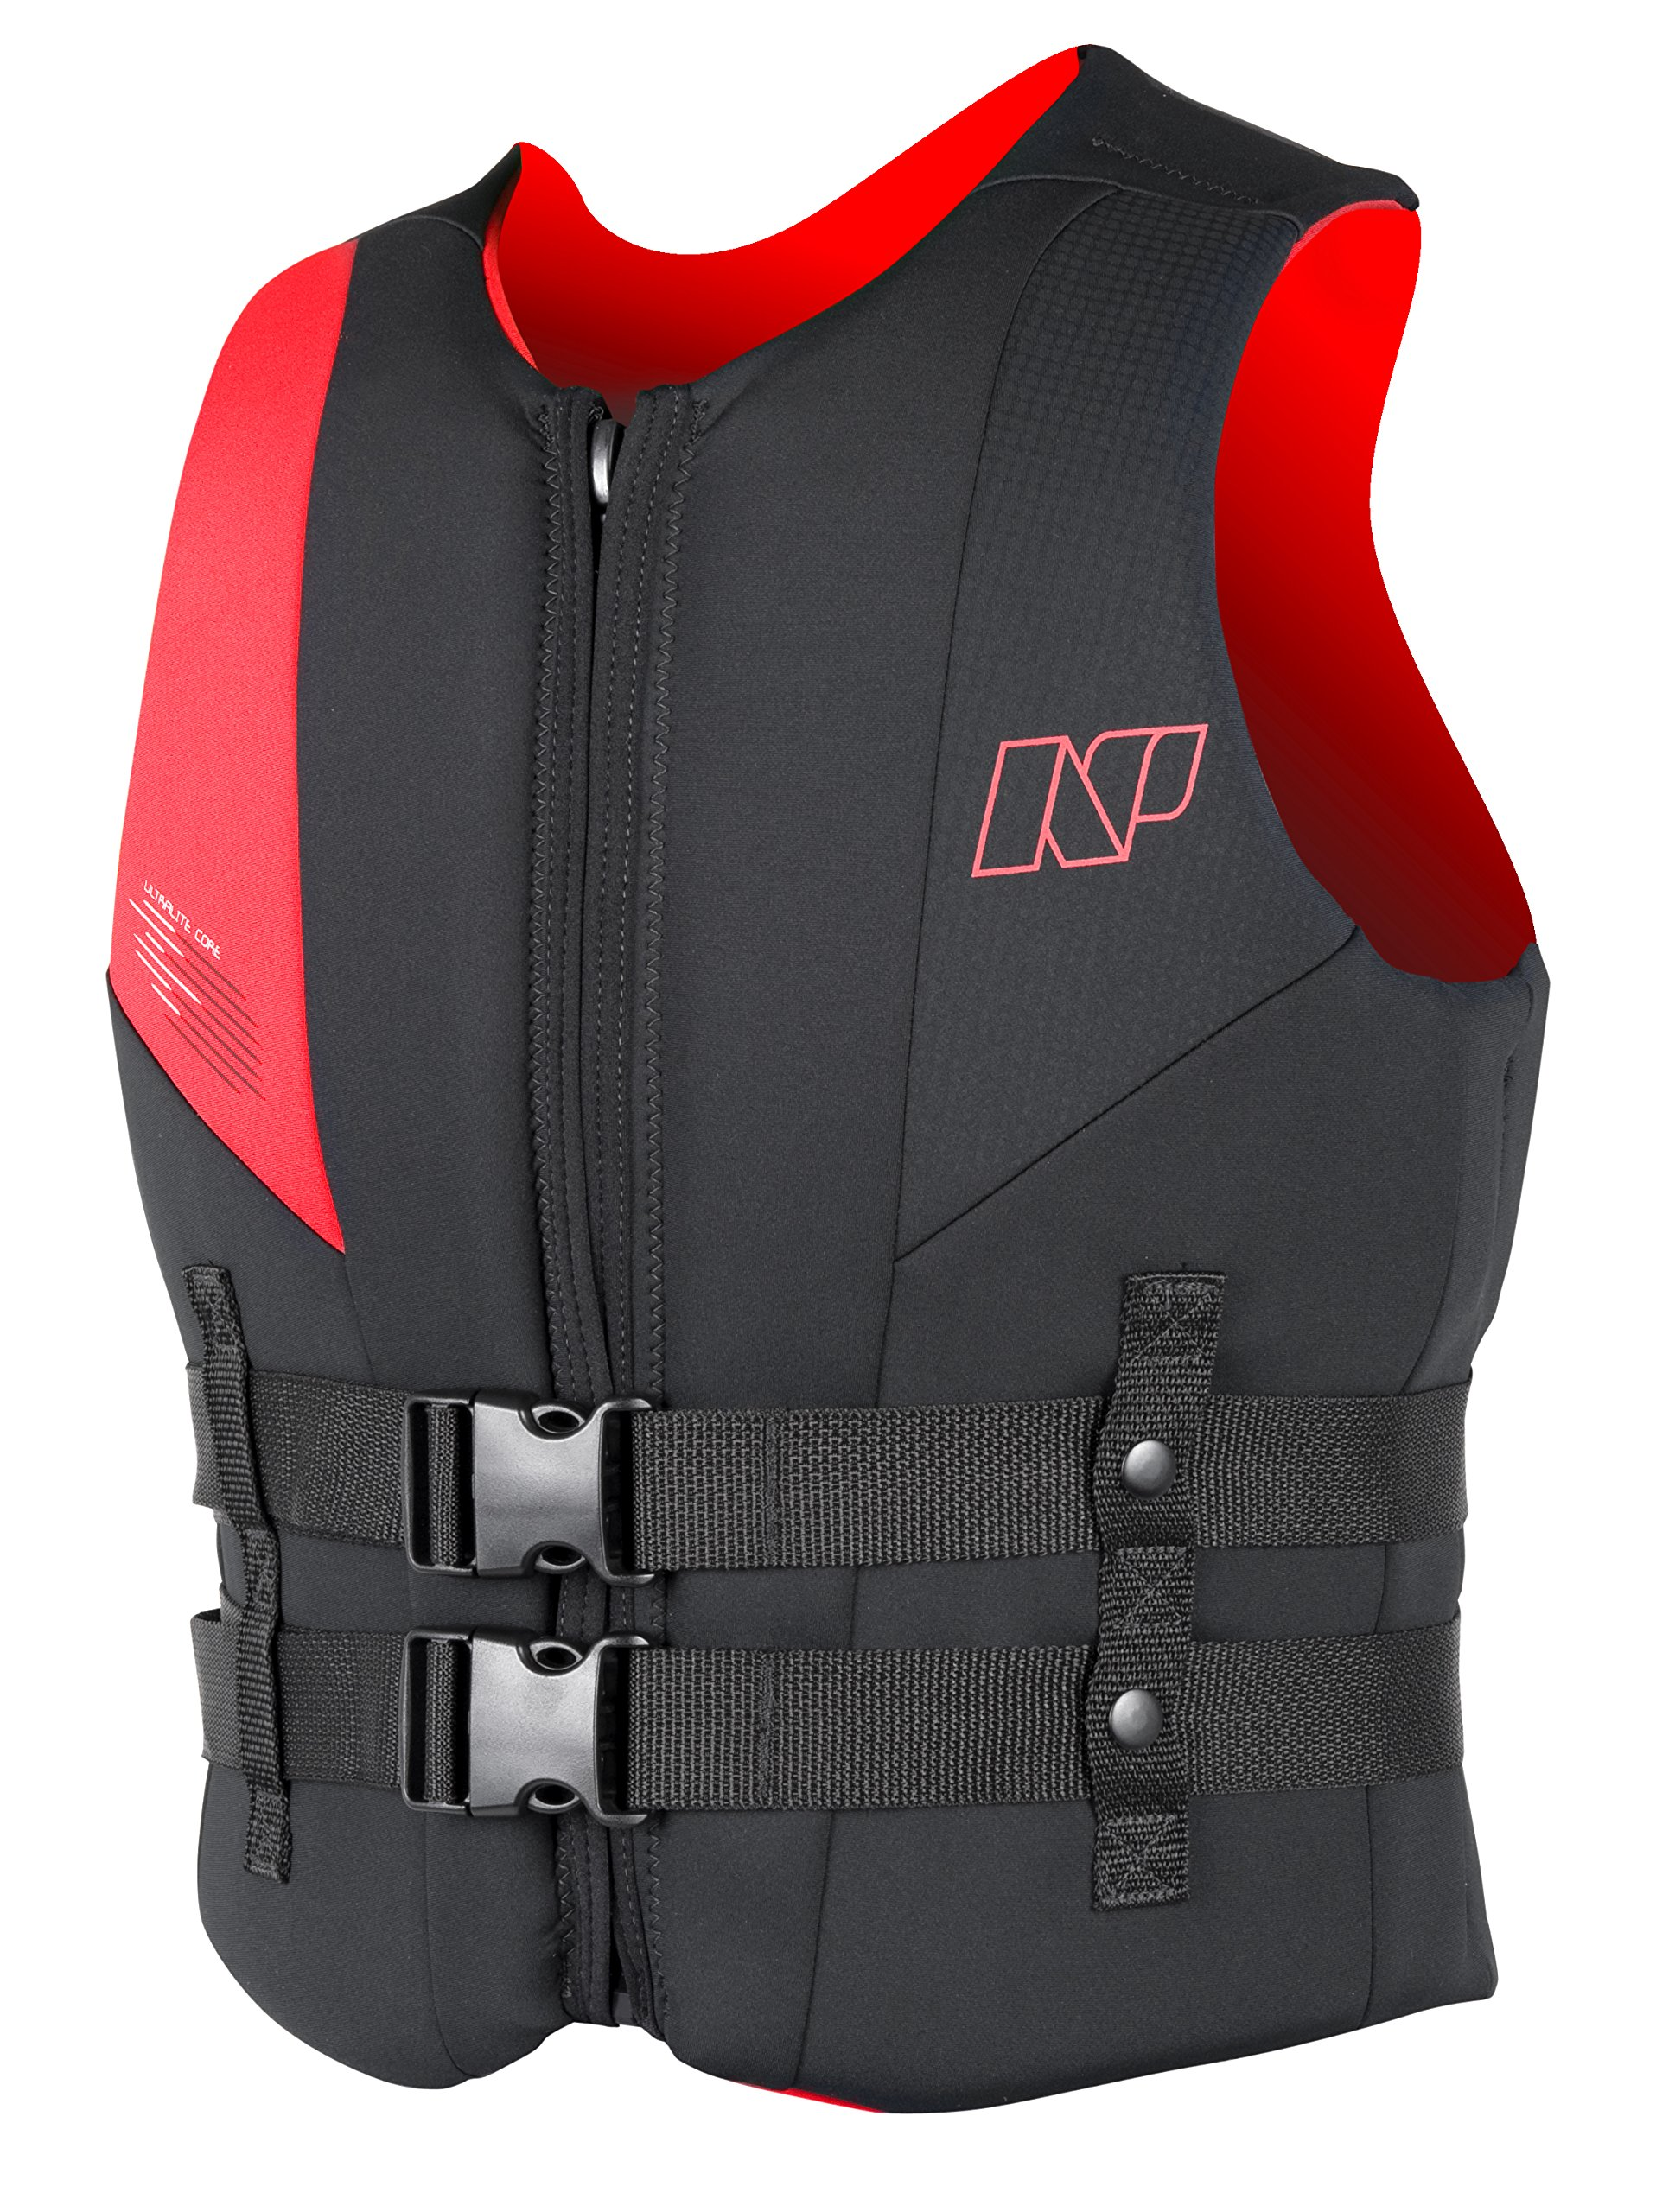 NP Surf USCG Neoprene Multi Sport Flotation Vest, Black/Red, Small